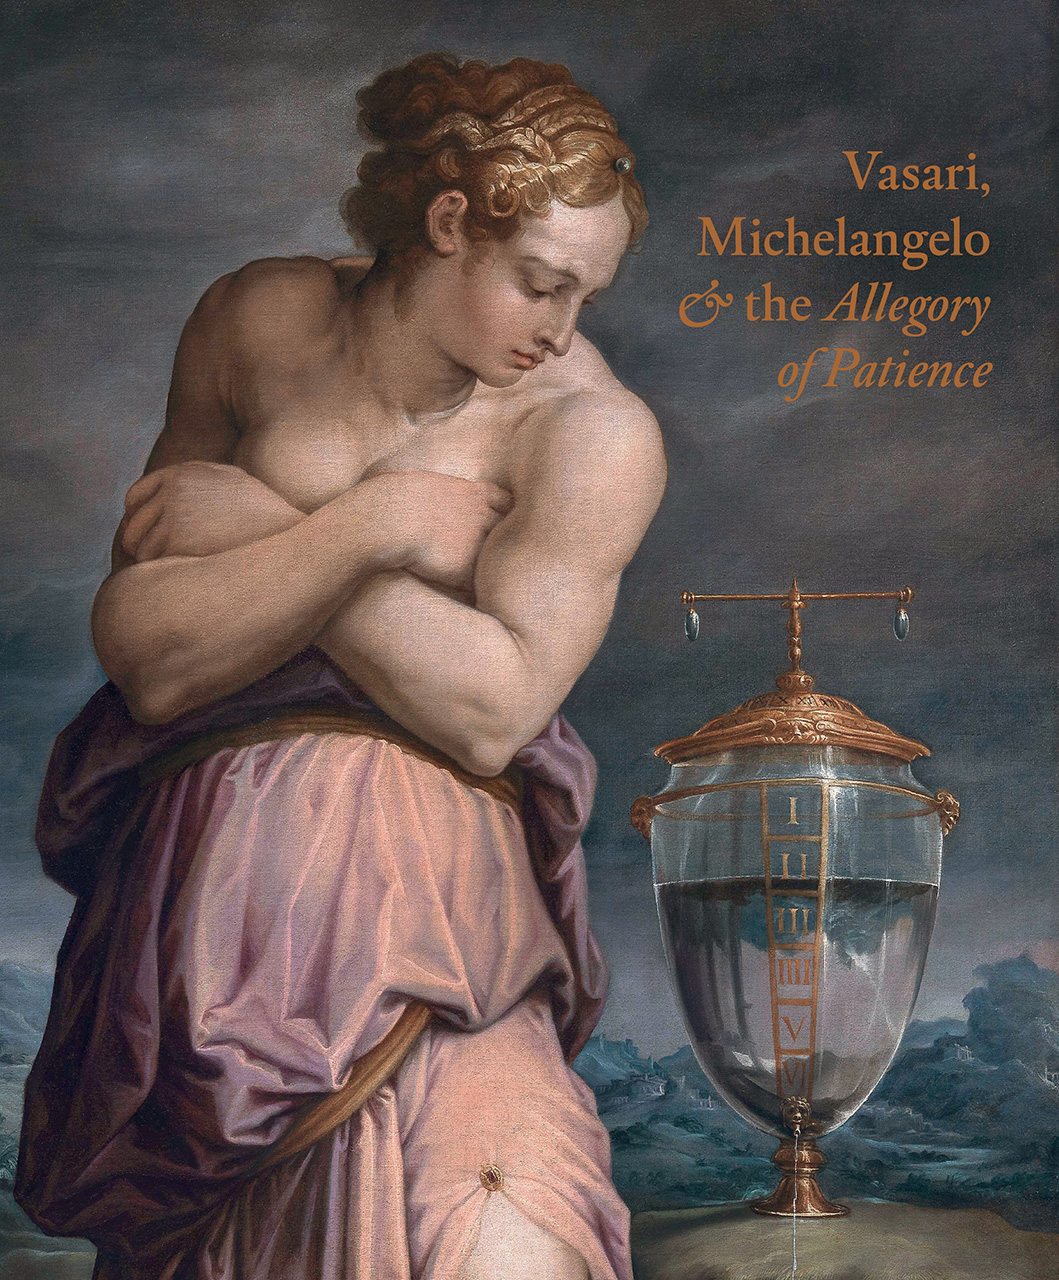 Vasari, Michelangelo and the Allegory of Patience